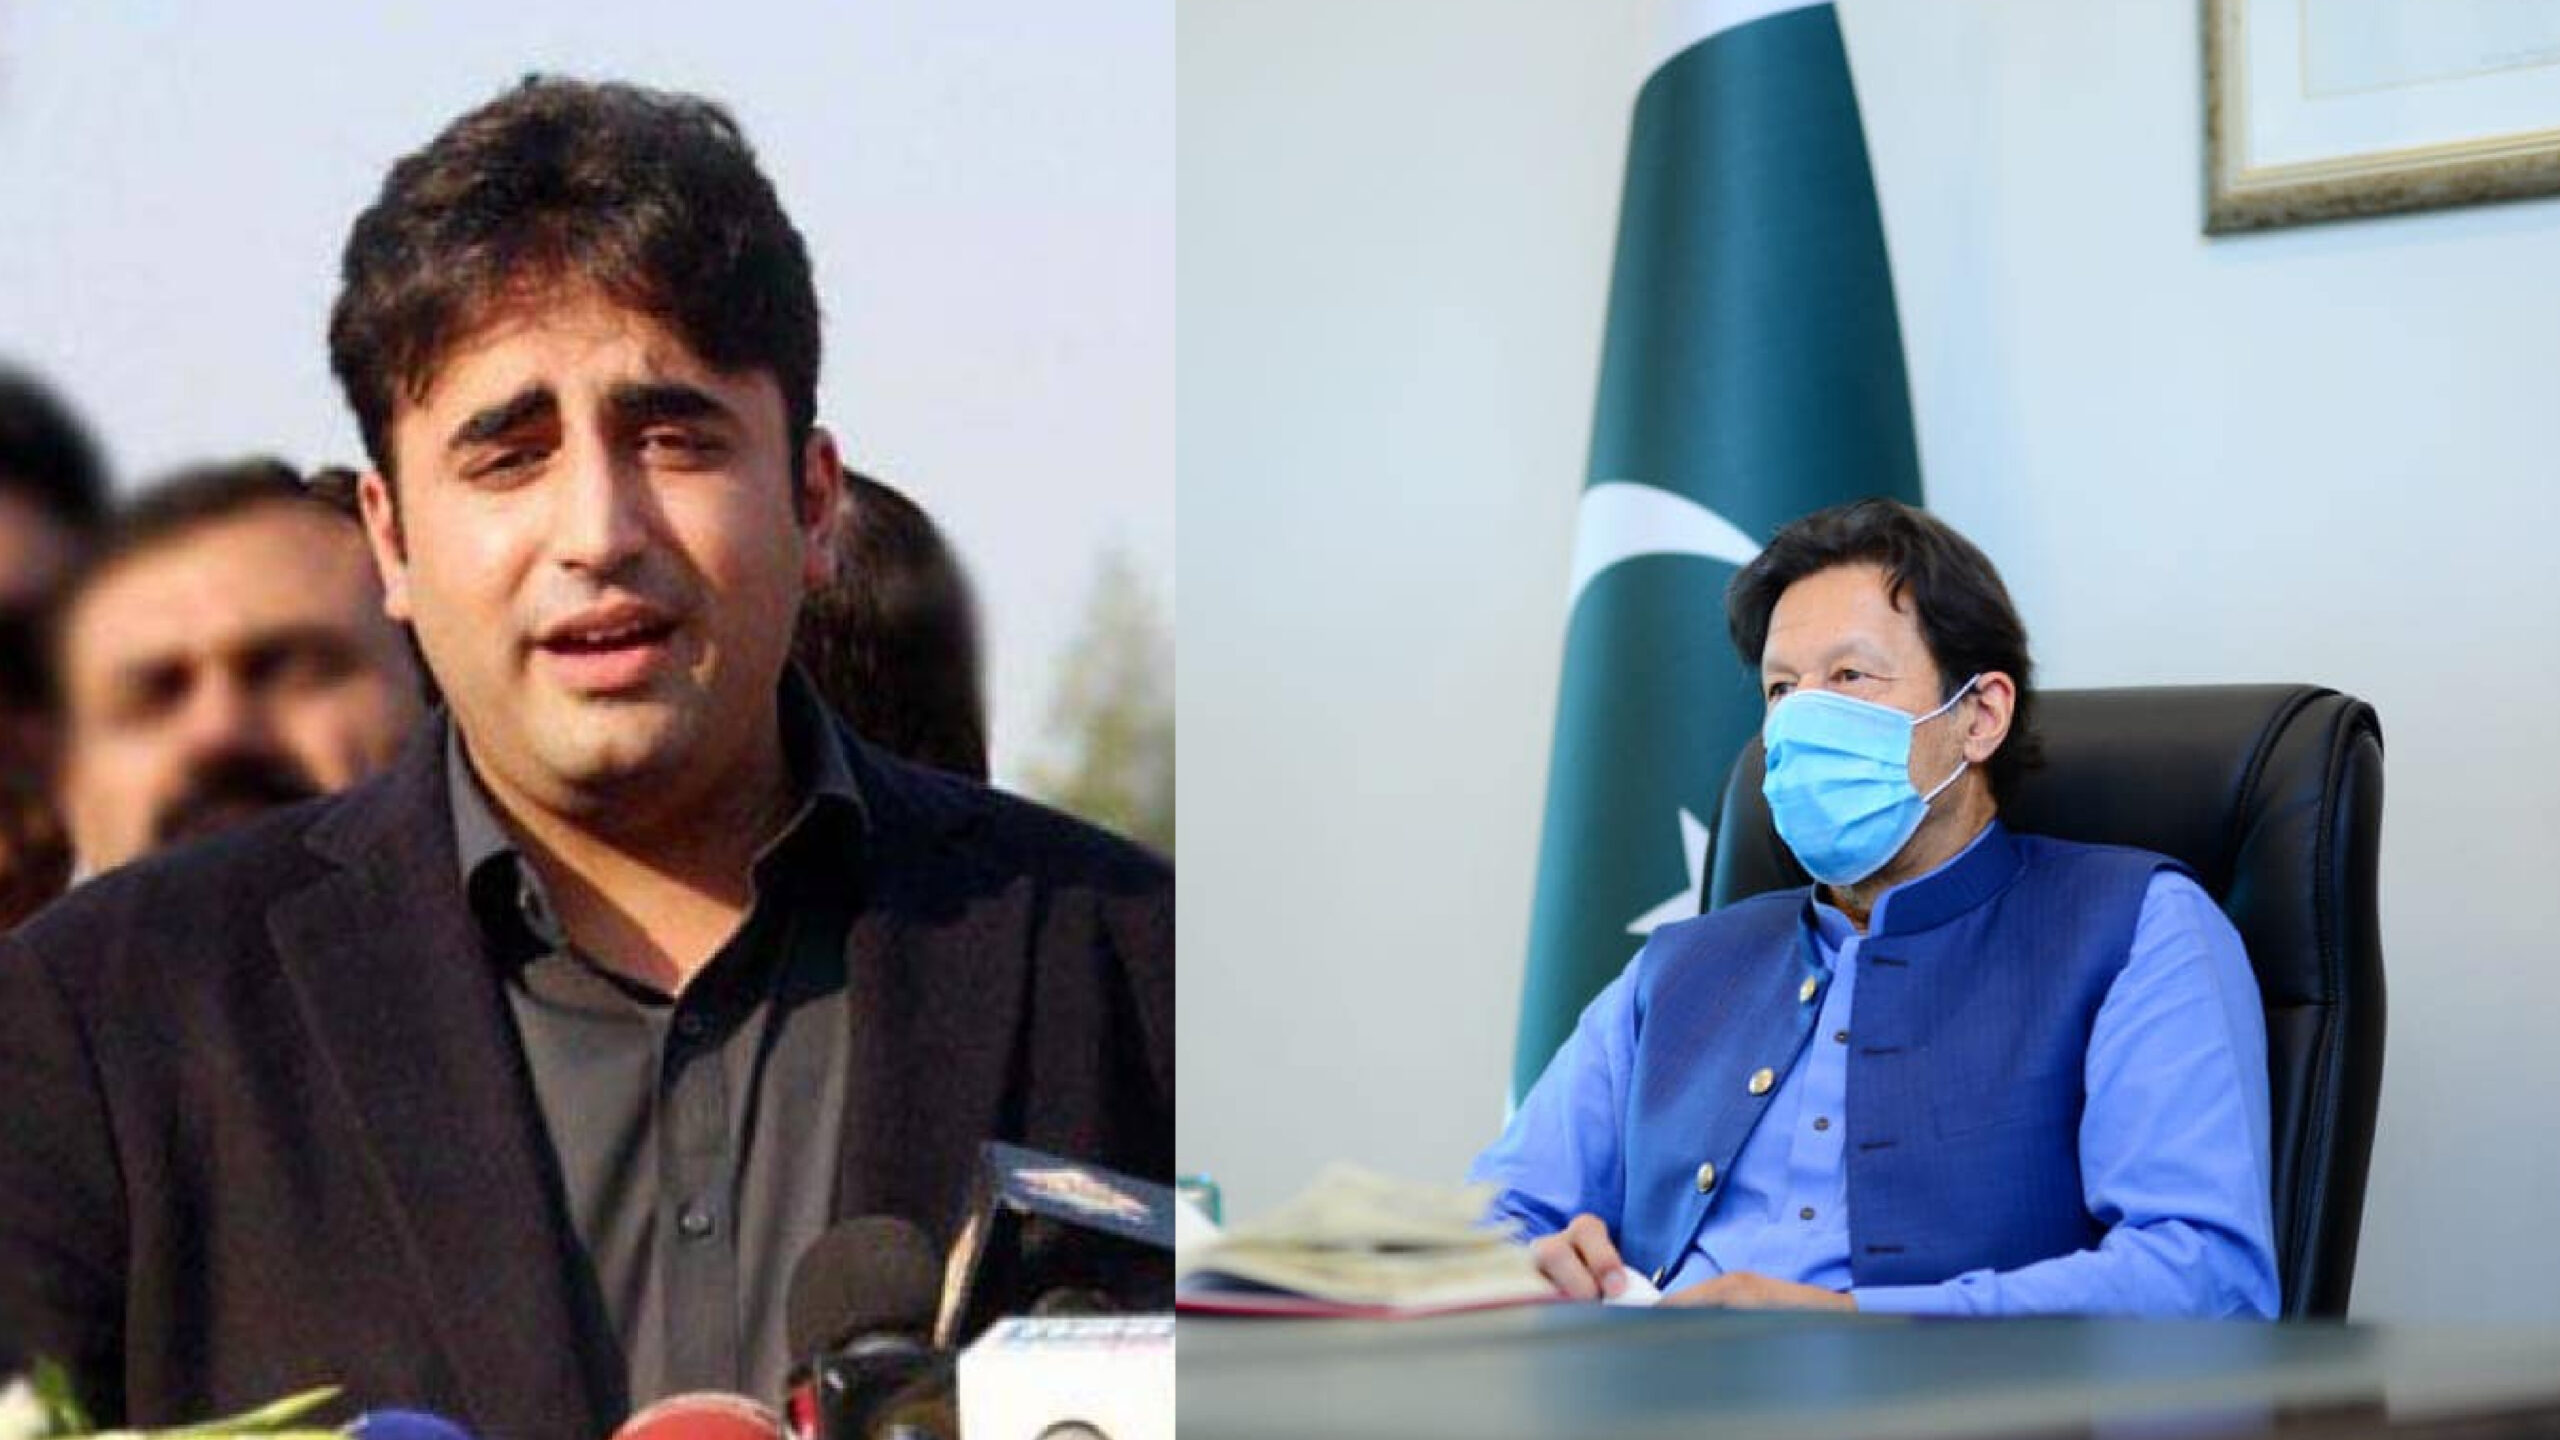 Bilawal lashes out at PM Khan, urges him to 'come out of Bani Gala palace'